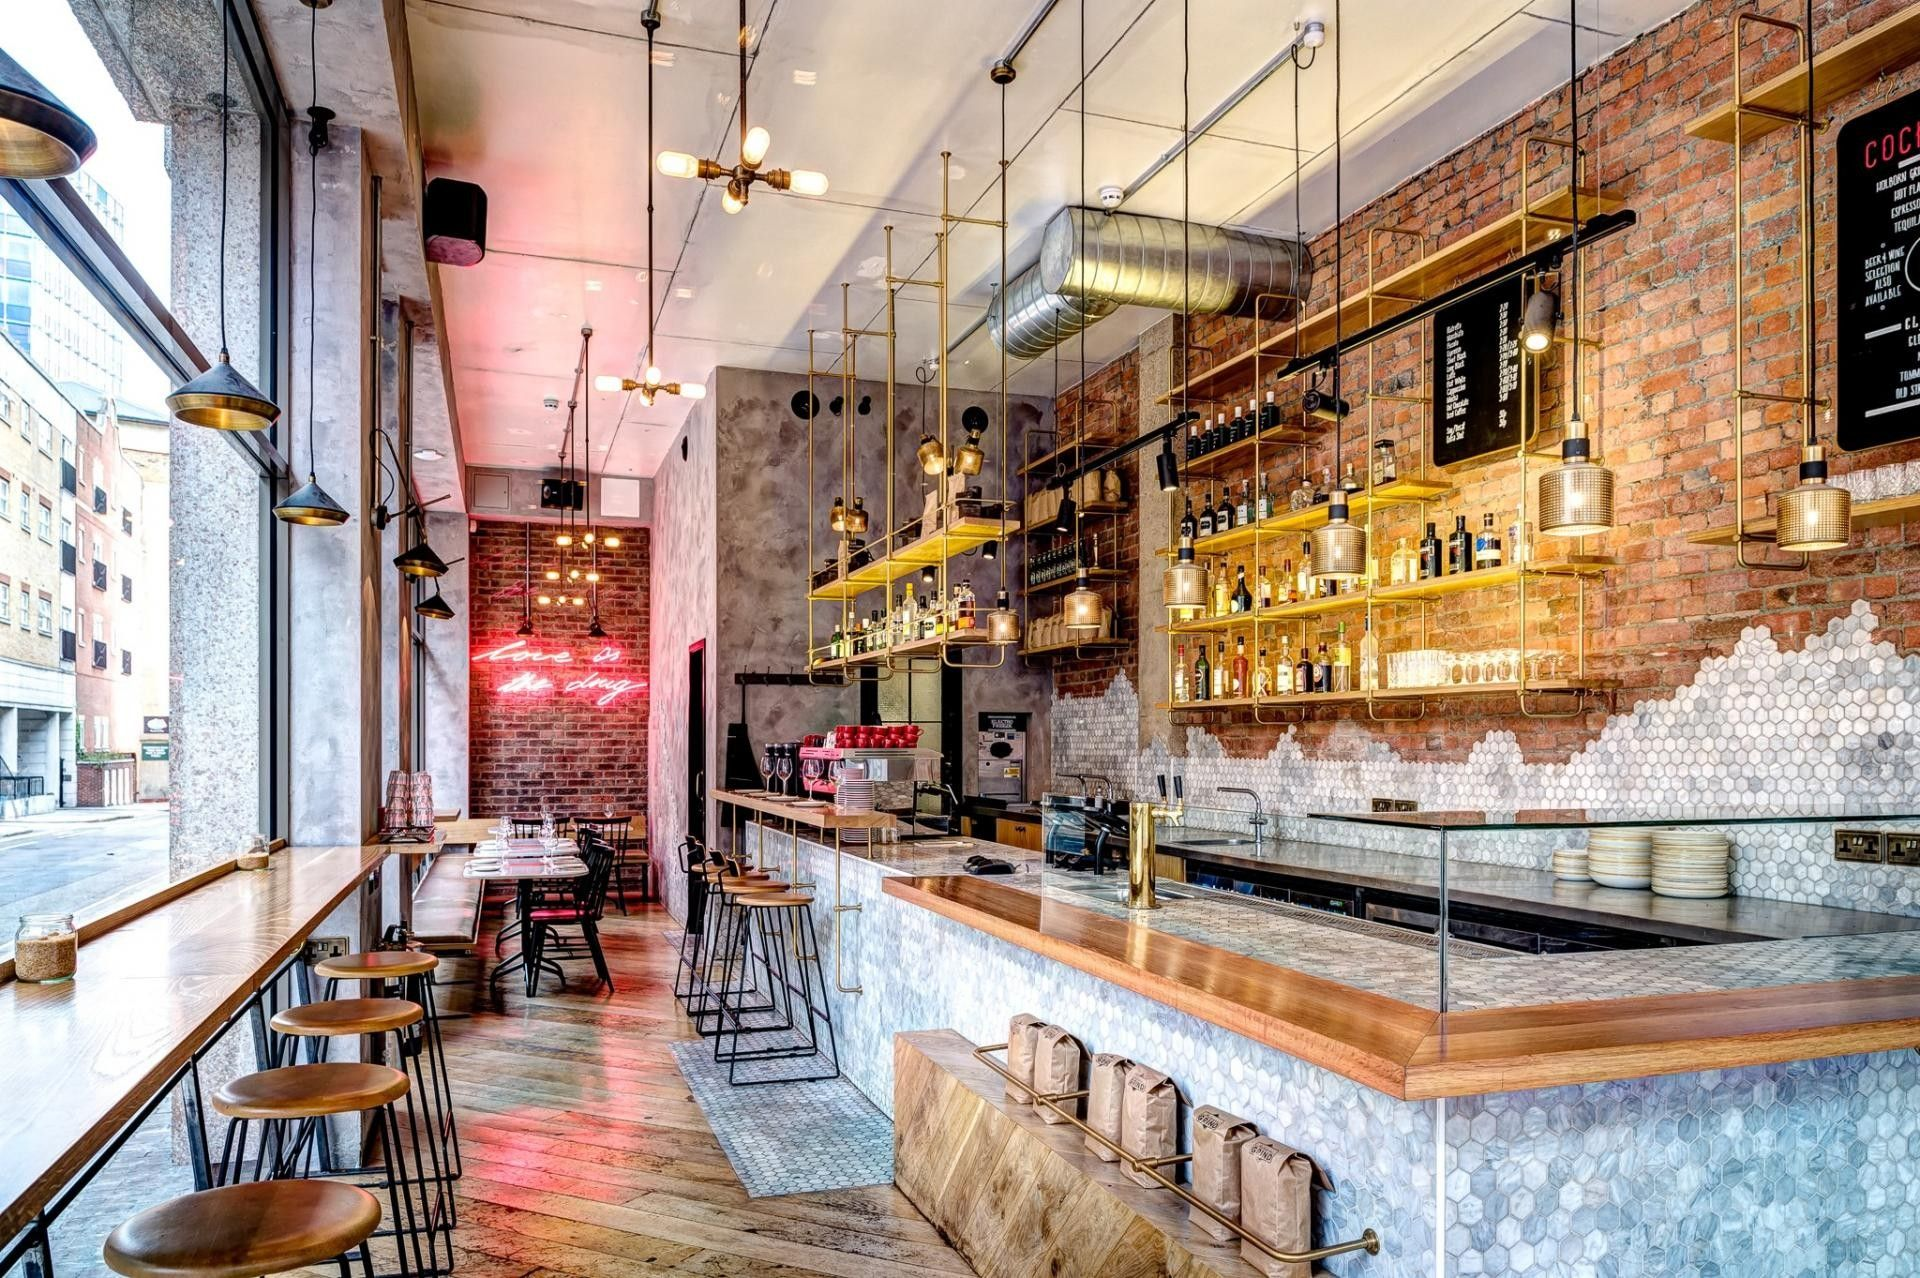 Biosol Design Studio specified the Brass Four Bulb Pendants and ...